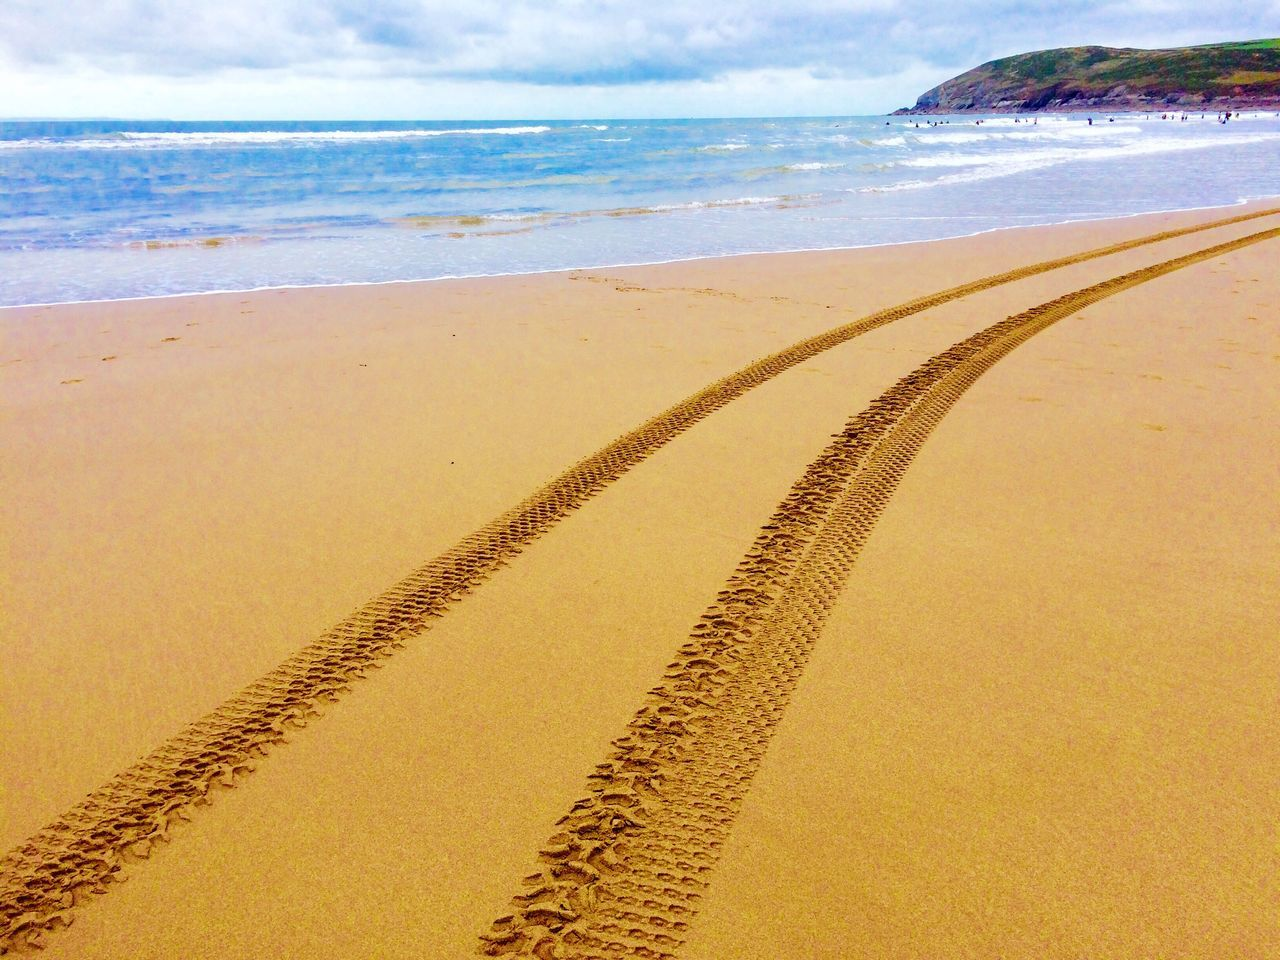 Follow me Beach Beachphotography Beach Life Beach Day Tyre Tyre Tracks Tracks Tracks In The Sand Life Guard Tracks On The Beach Sea Water Horizon Over Water Sand Coastline Outdoors Wave Seaside Devon Coast Croyde